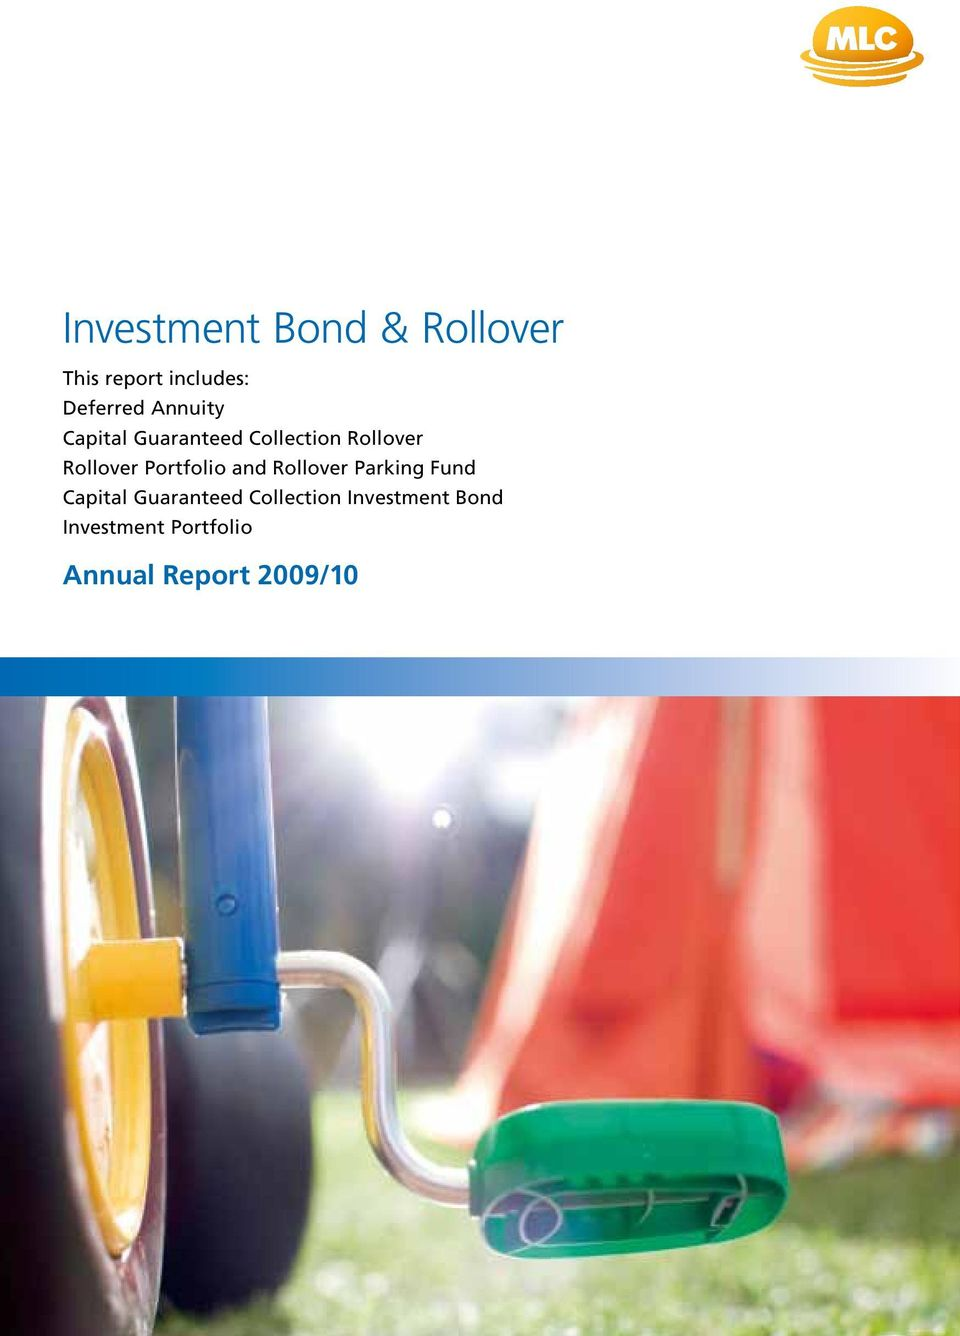 Portfolio and Rollover Parking Fund Capital Guaranteed